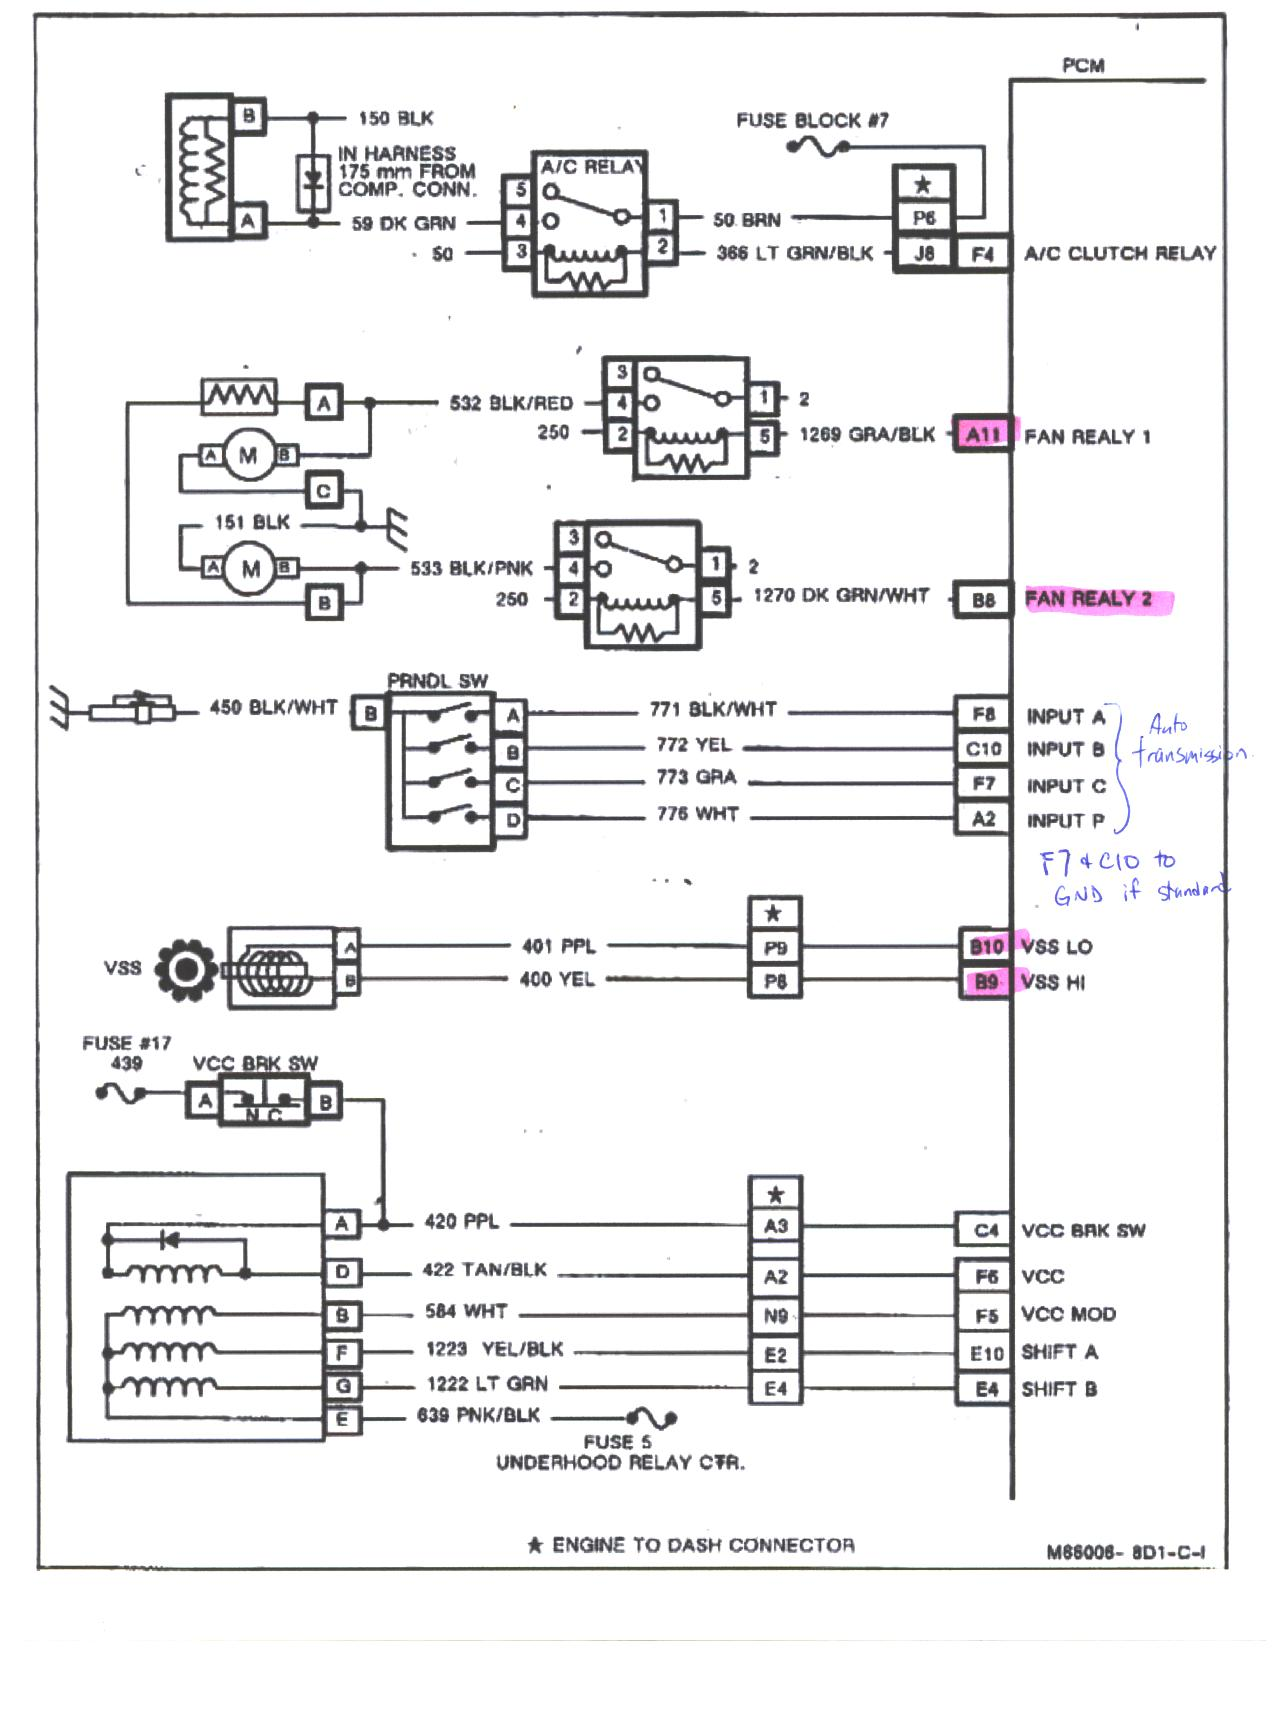 chevy astro van wiring diagram IYgoePB chevy astro van wiring diagram image details 2000 Astro Van Wiring Diagram at n-0.co